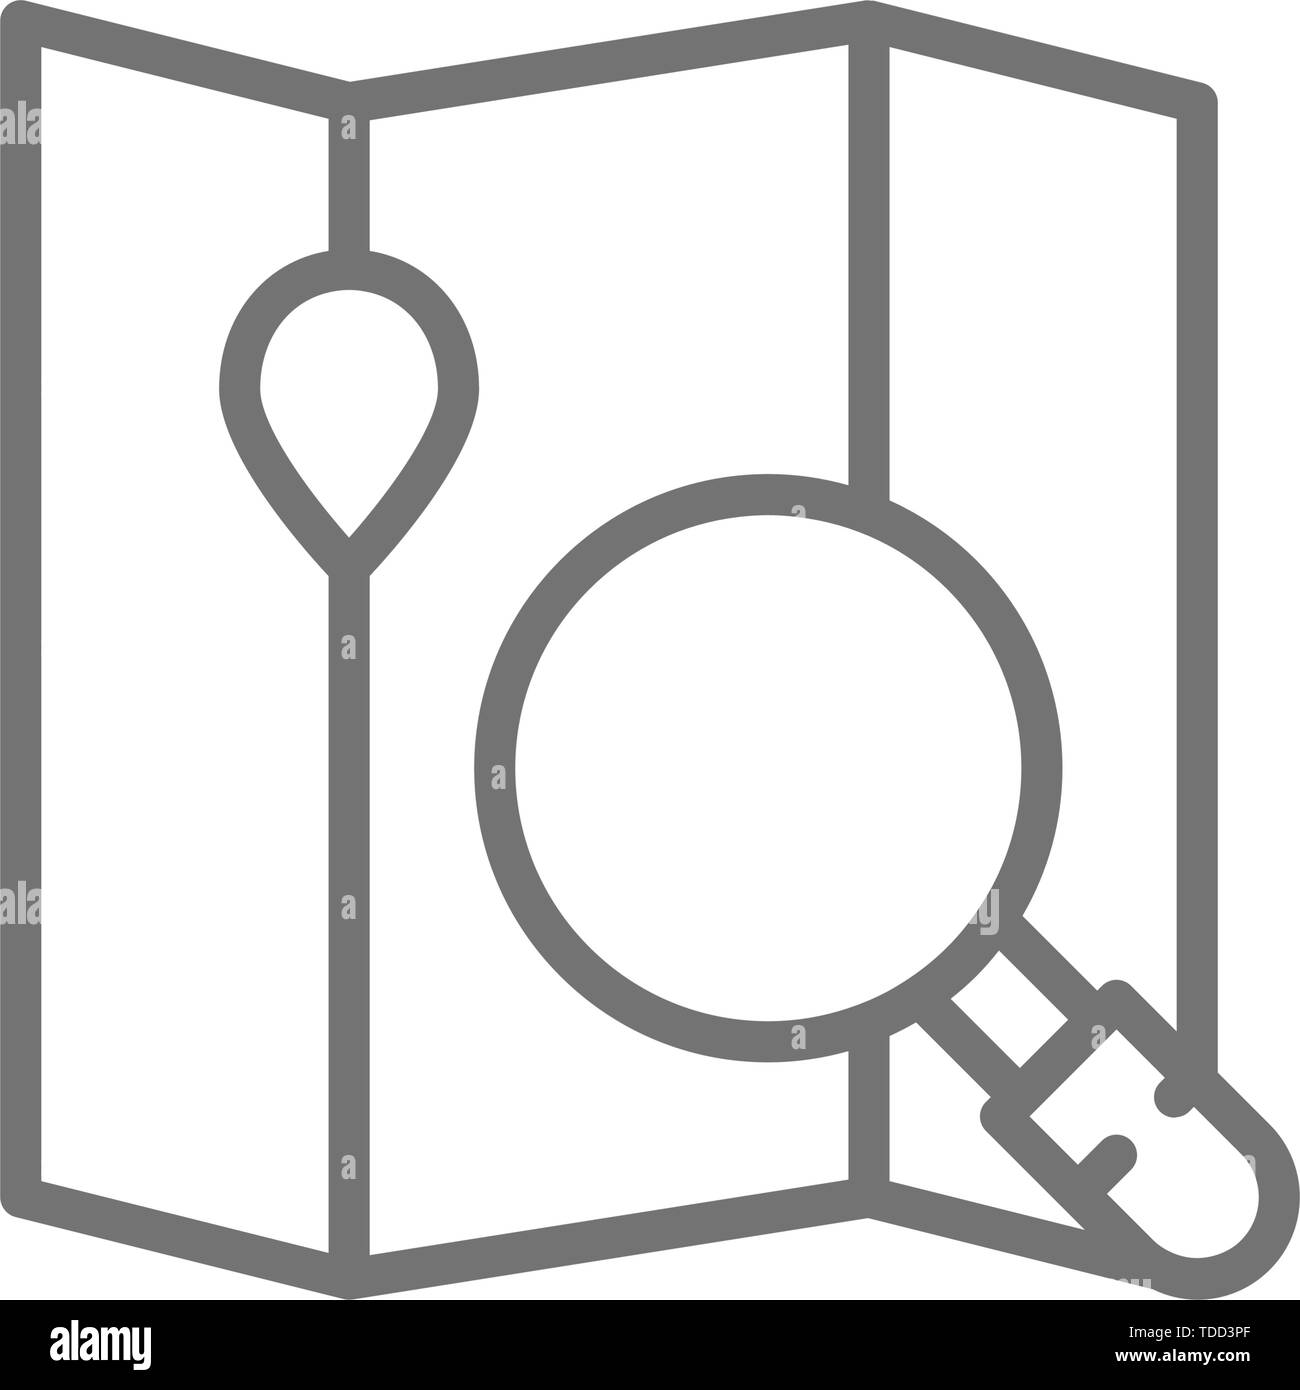 Map under a magnifying glass, navigation line icon. - Stock Image